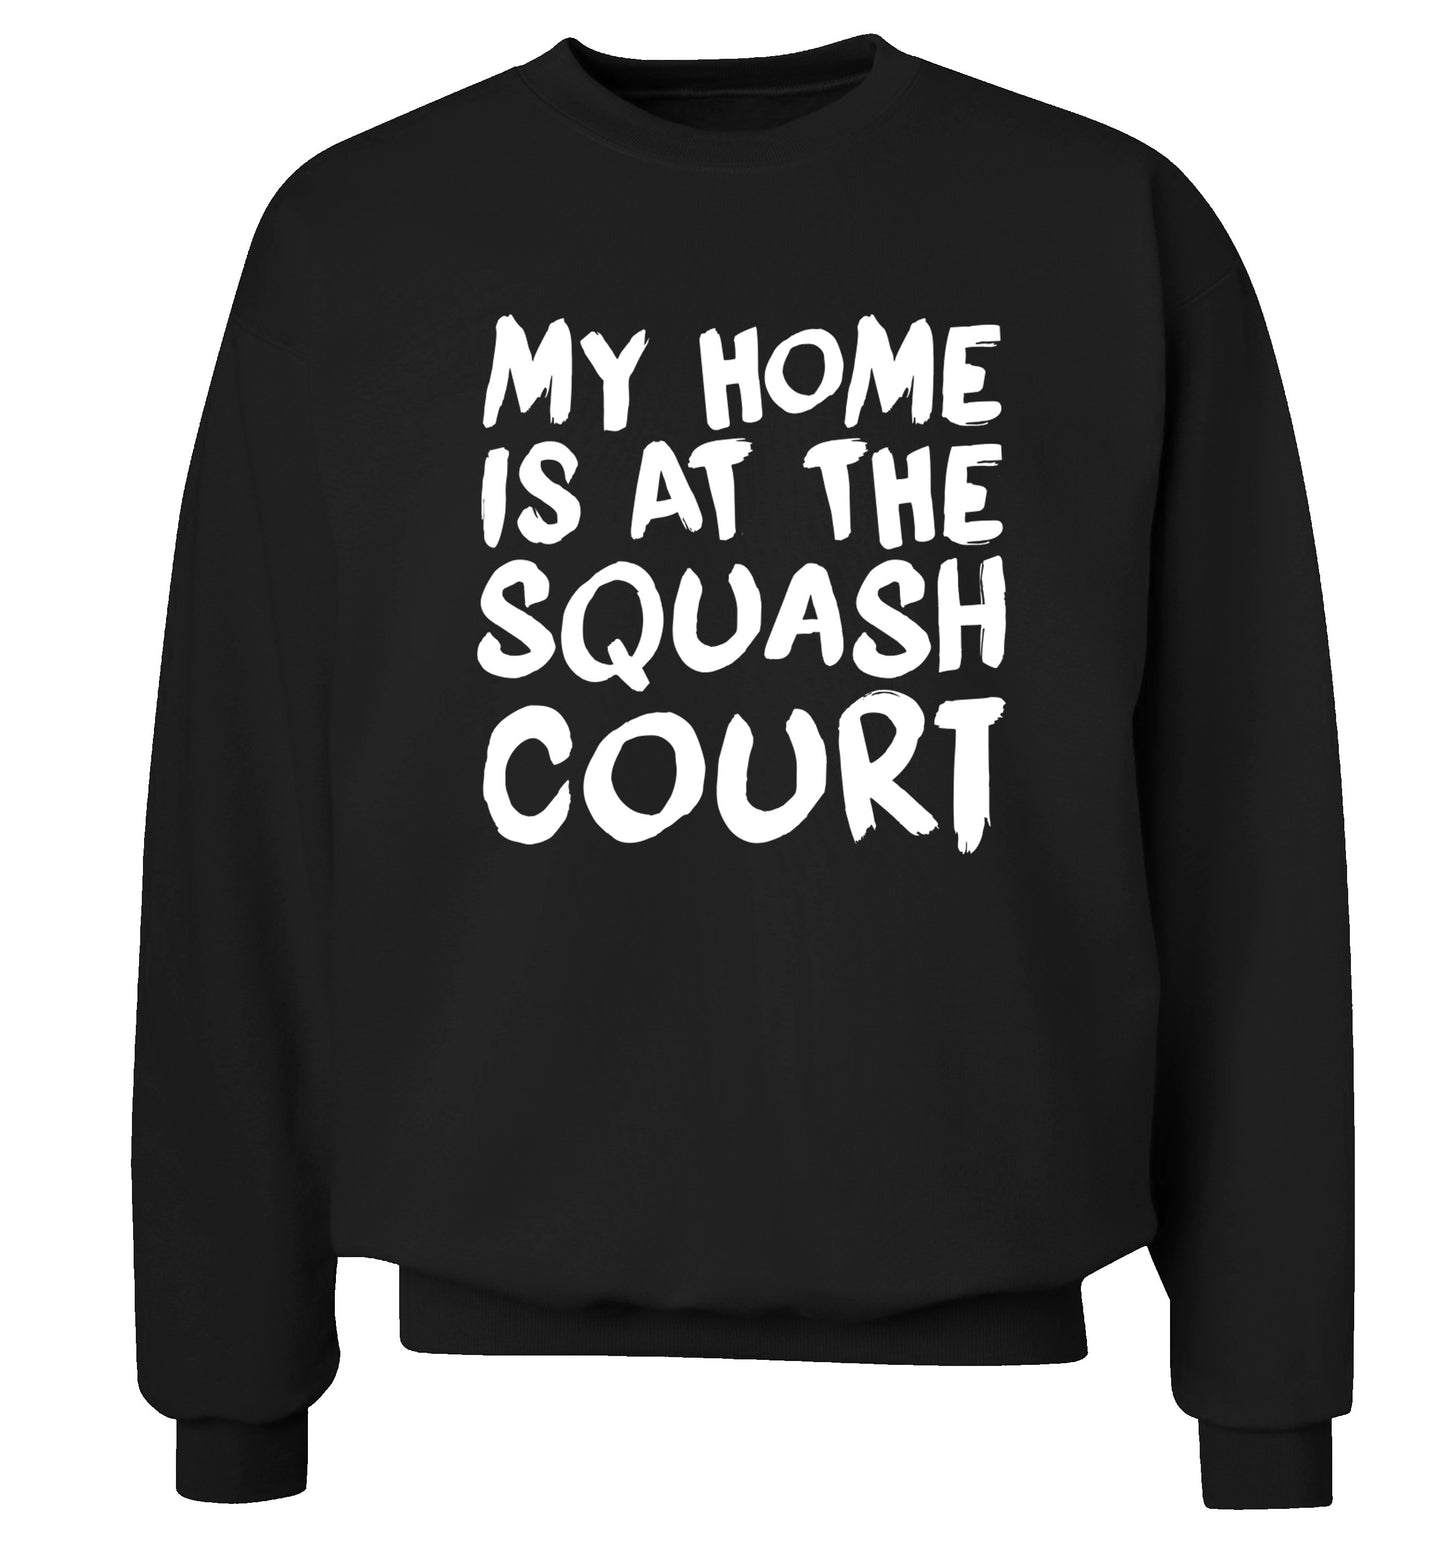 My home is at the squash court Adult's unisex black Sweater 2XL